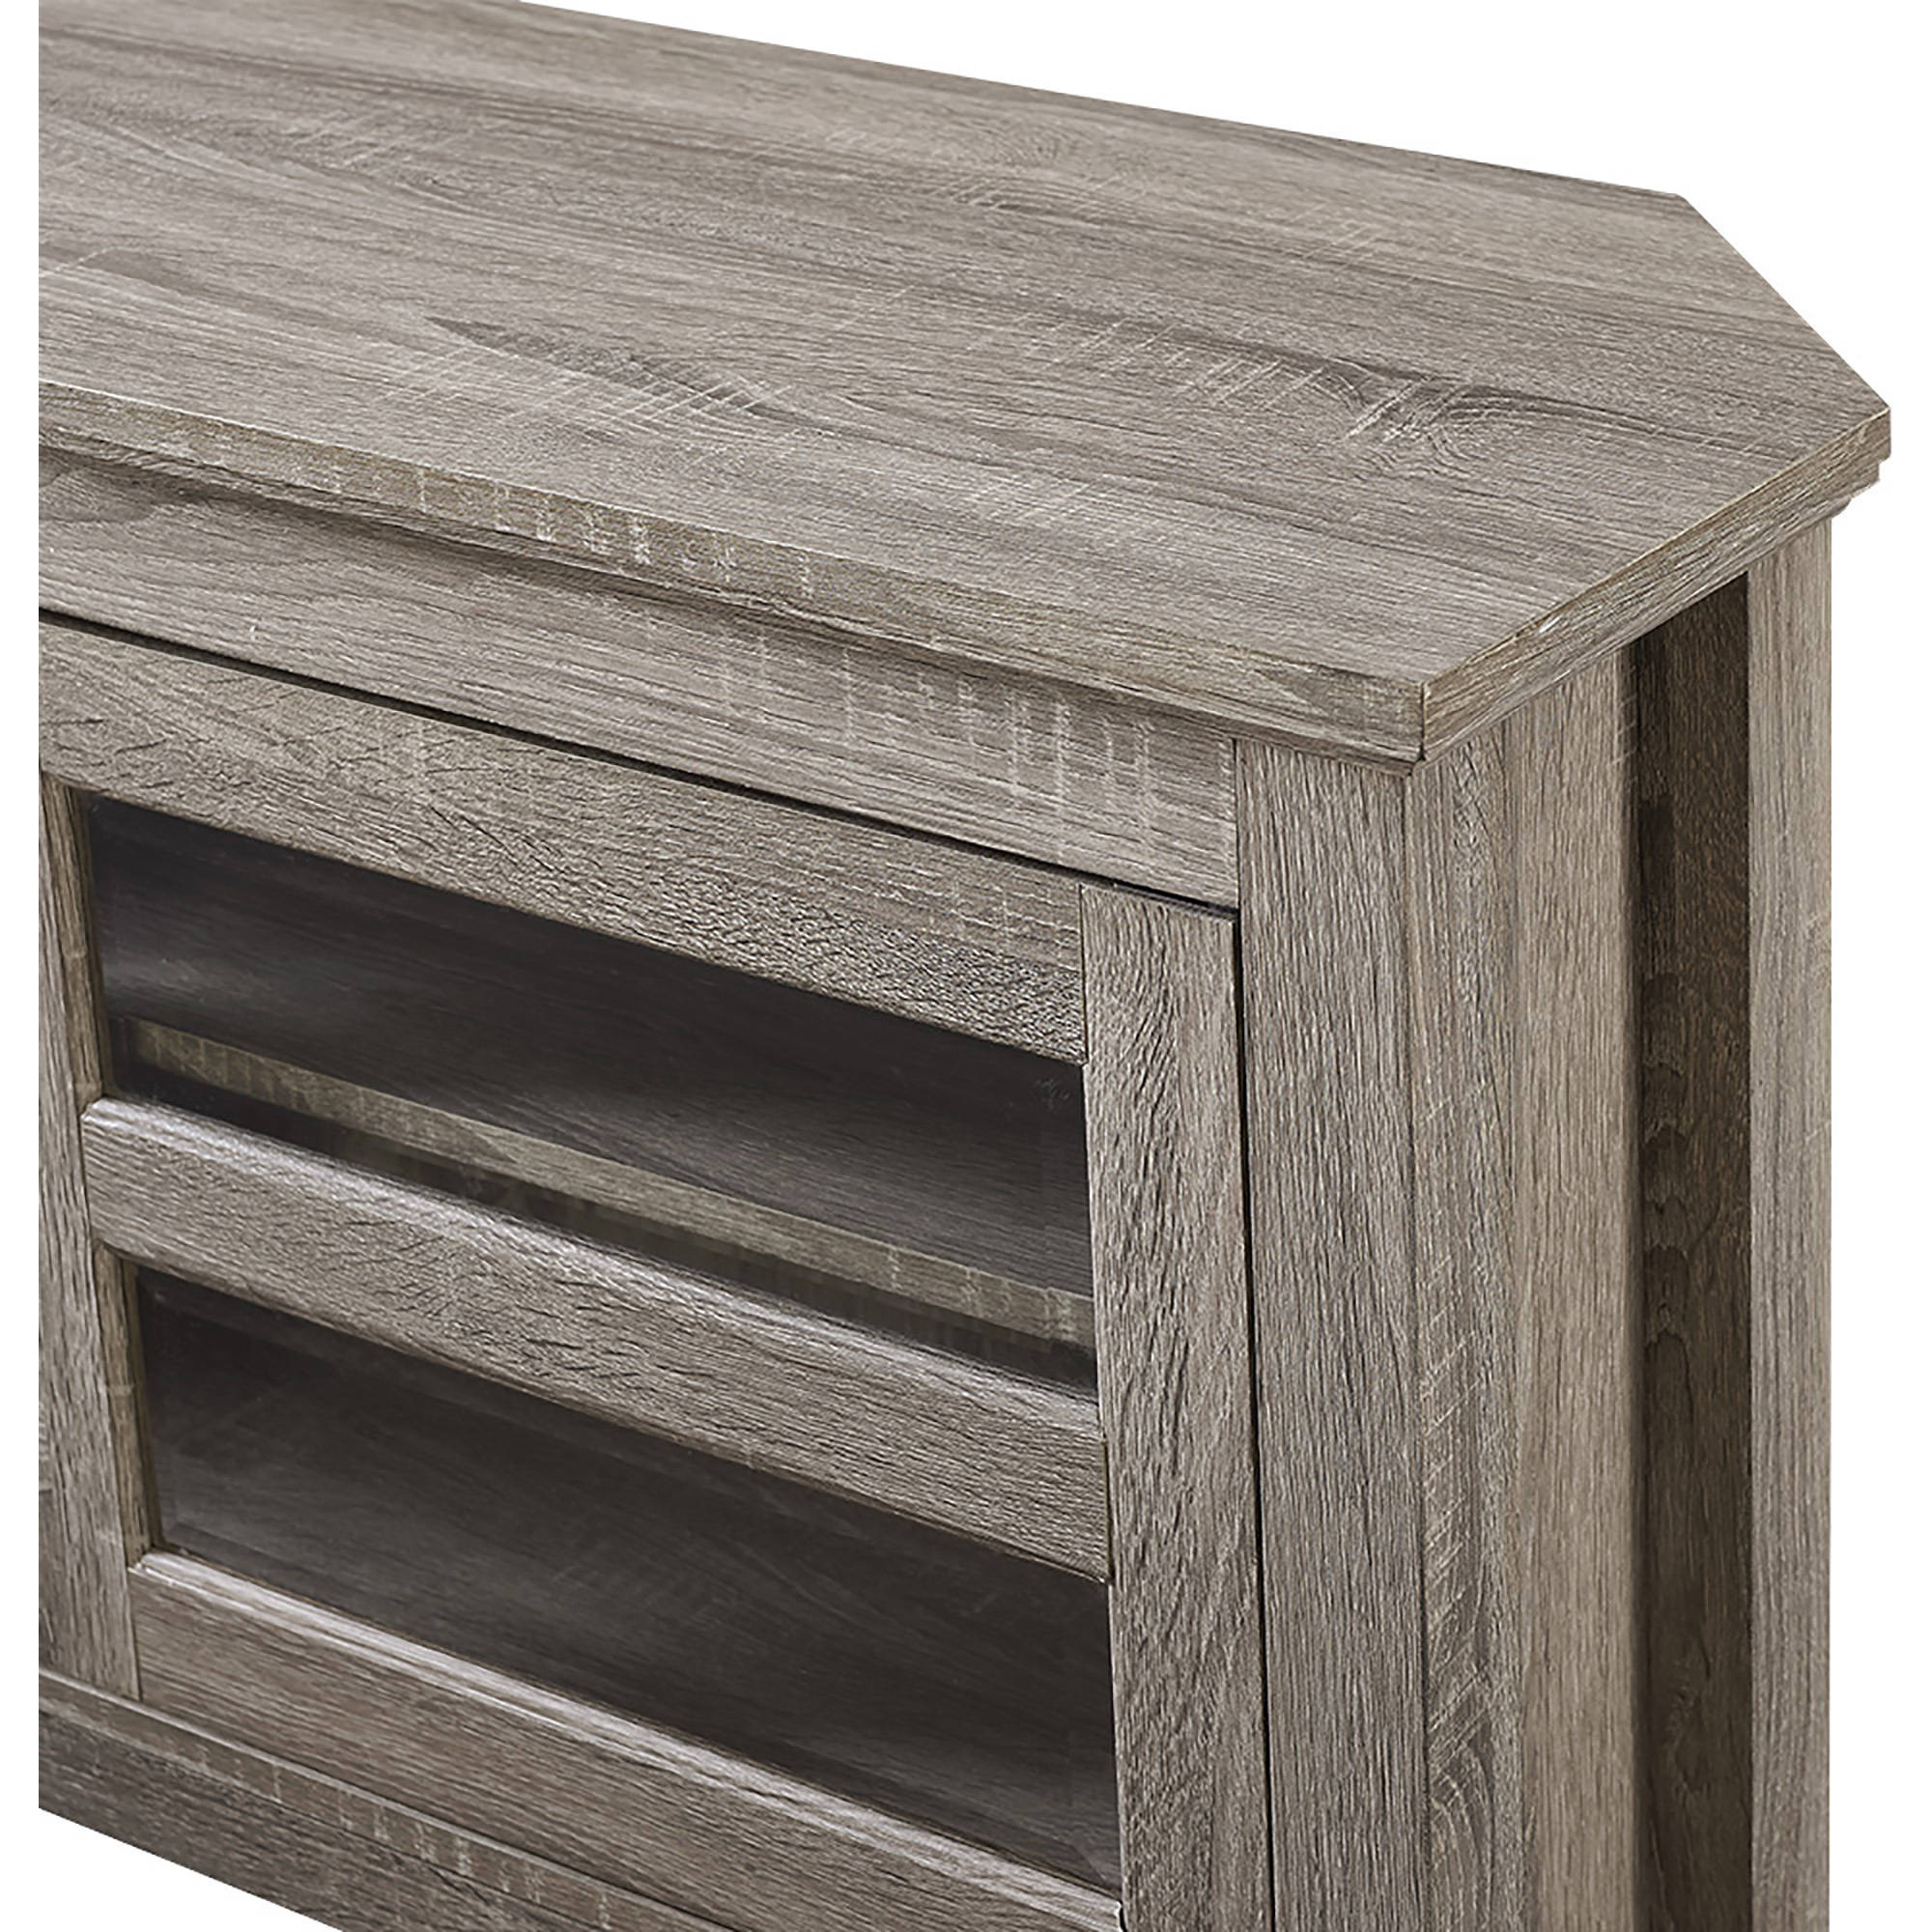 Casey Grey 74 Inch Tv Stands Intended For Most Recently Released Tv Stands With Mount Rustic Wood Stand Modern Sliding Barn Doors (View 6 of 20)